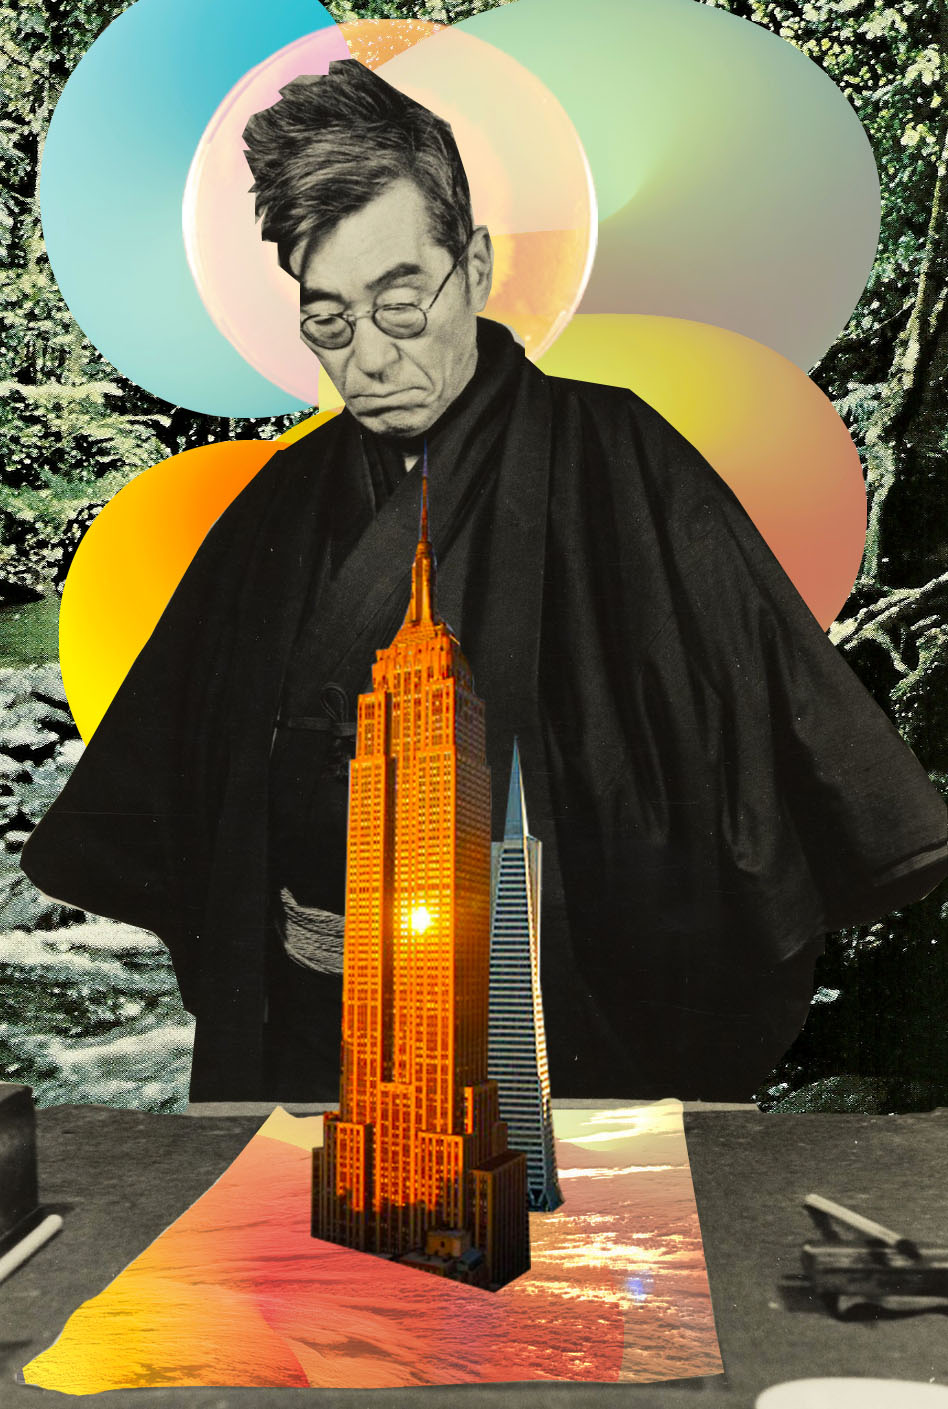 Capitalism Zen [collage, 2015]